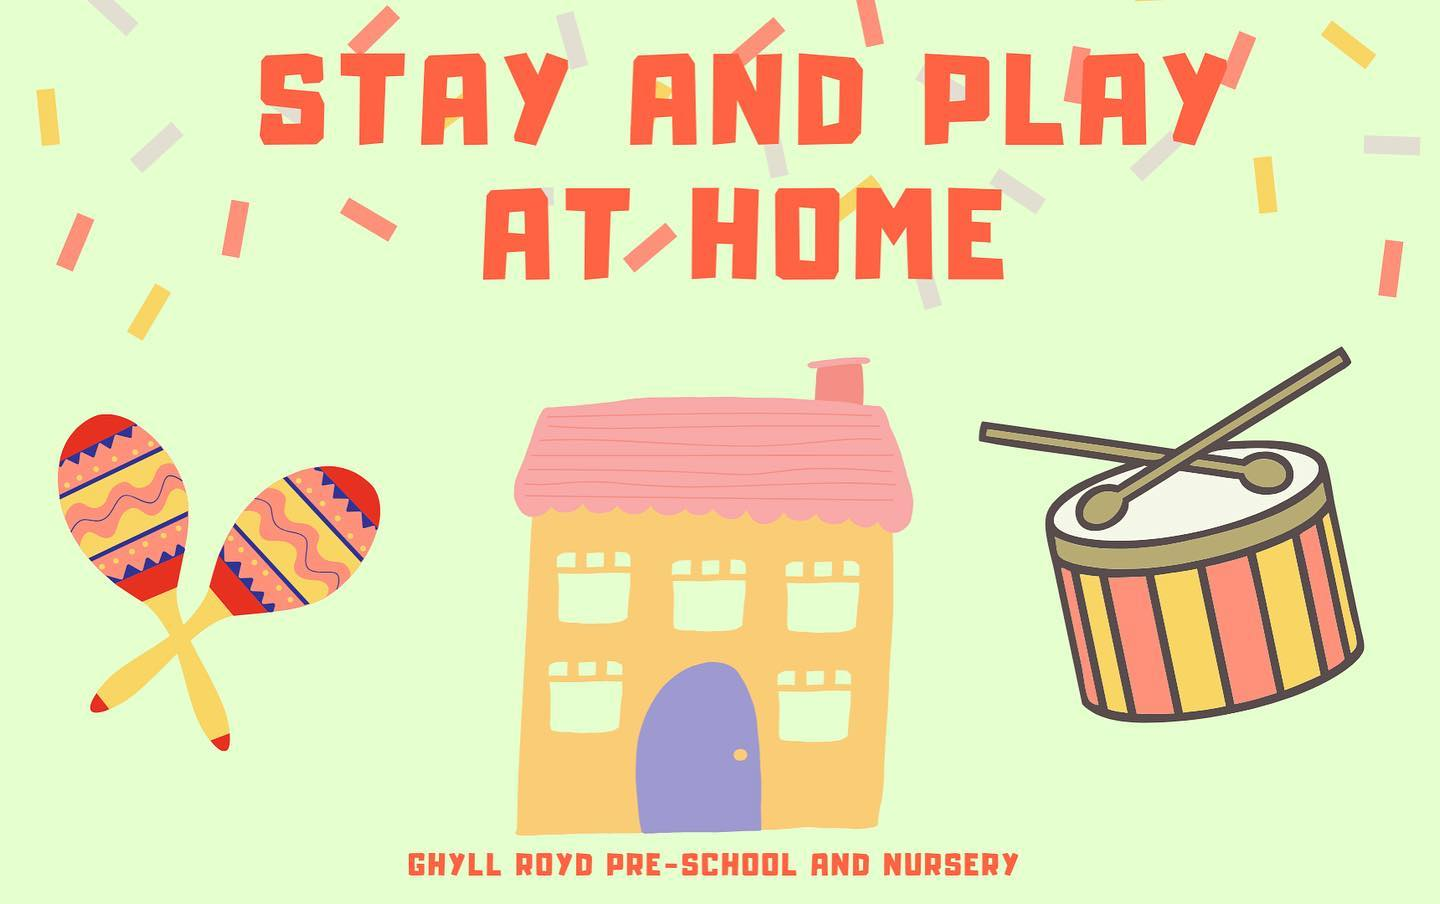 Stay and Play at Home!